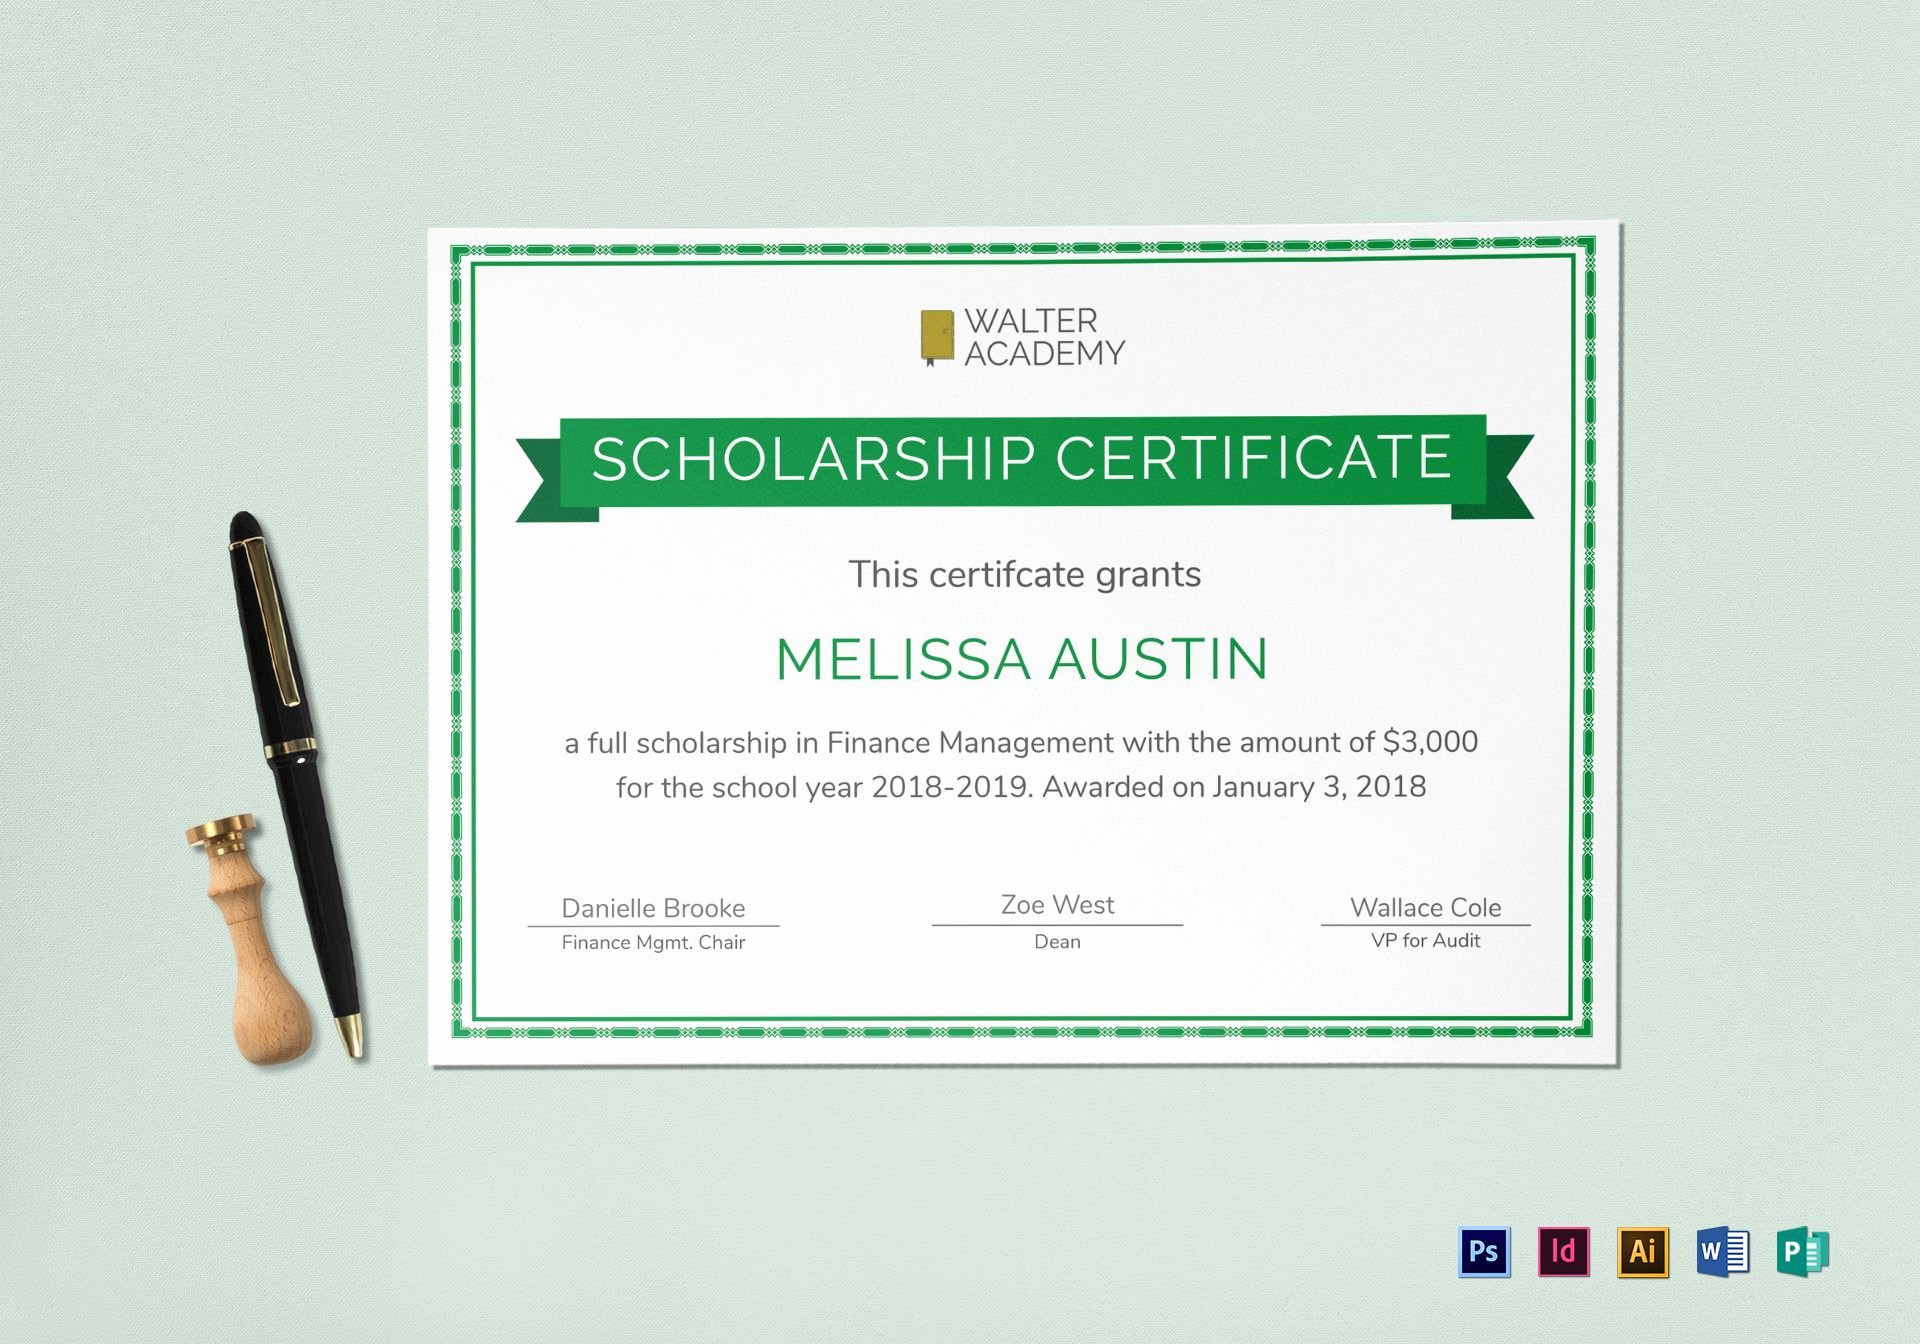 Scholarship Certificate Template for Word Best Of Scholarship Certificate Design Template In Psd Word